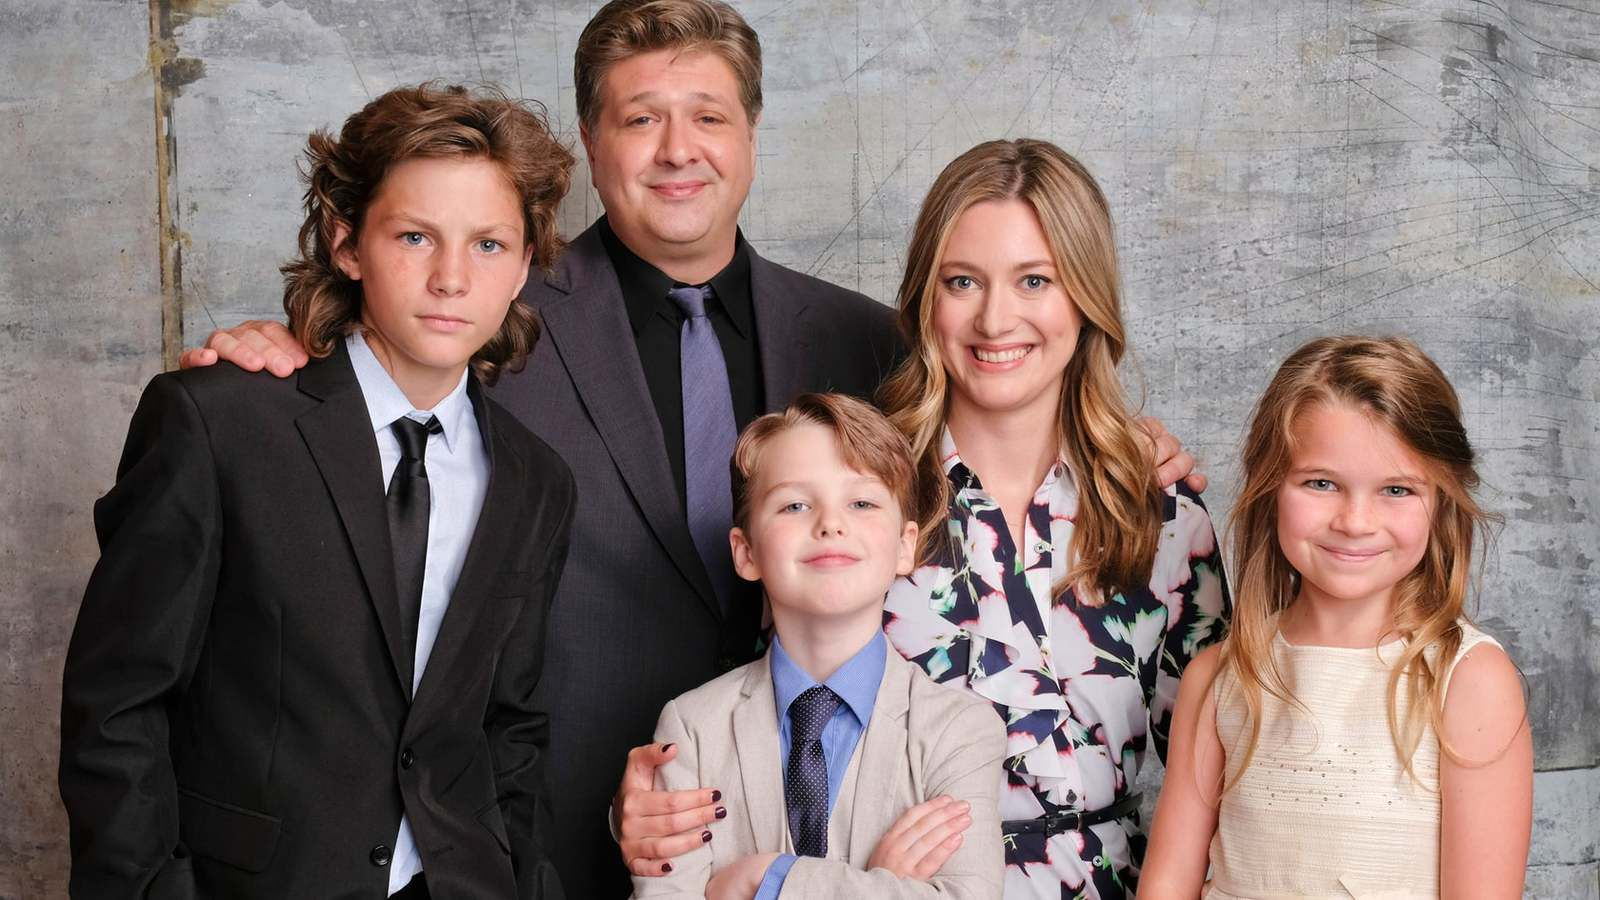 The cast of Young Sheldon